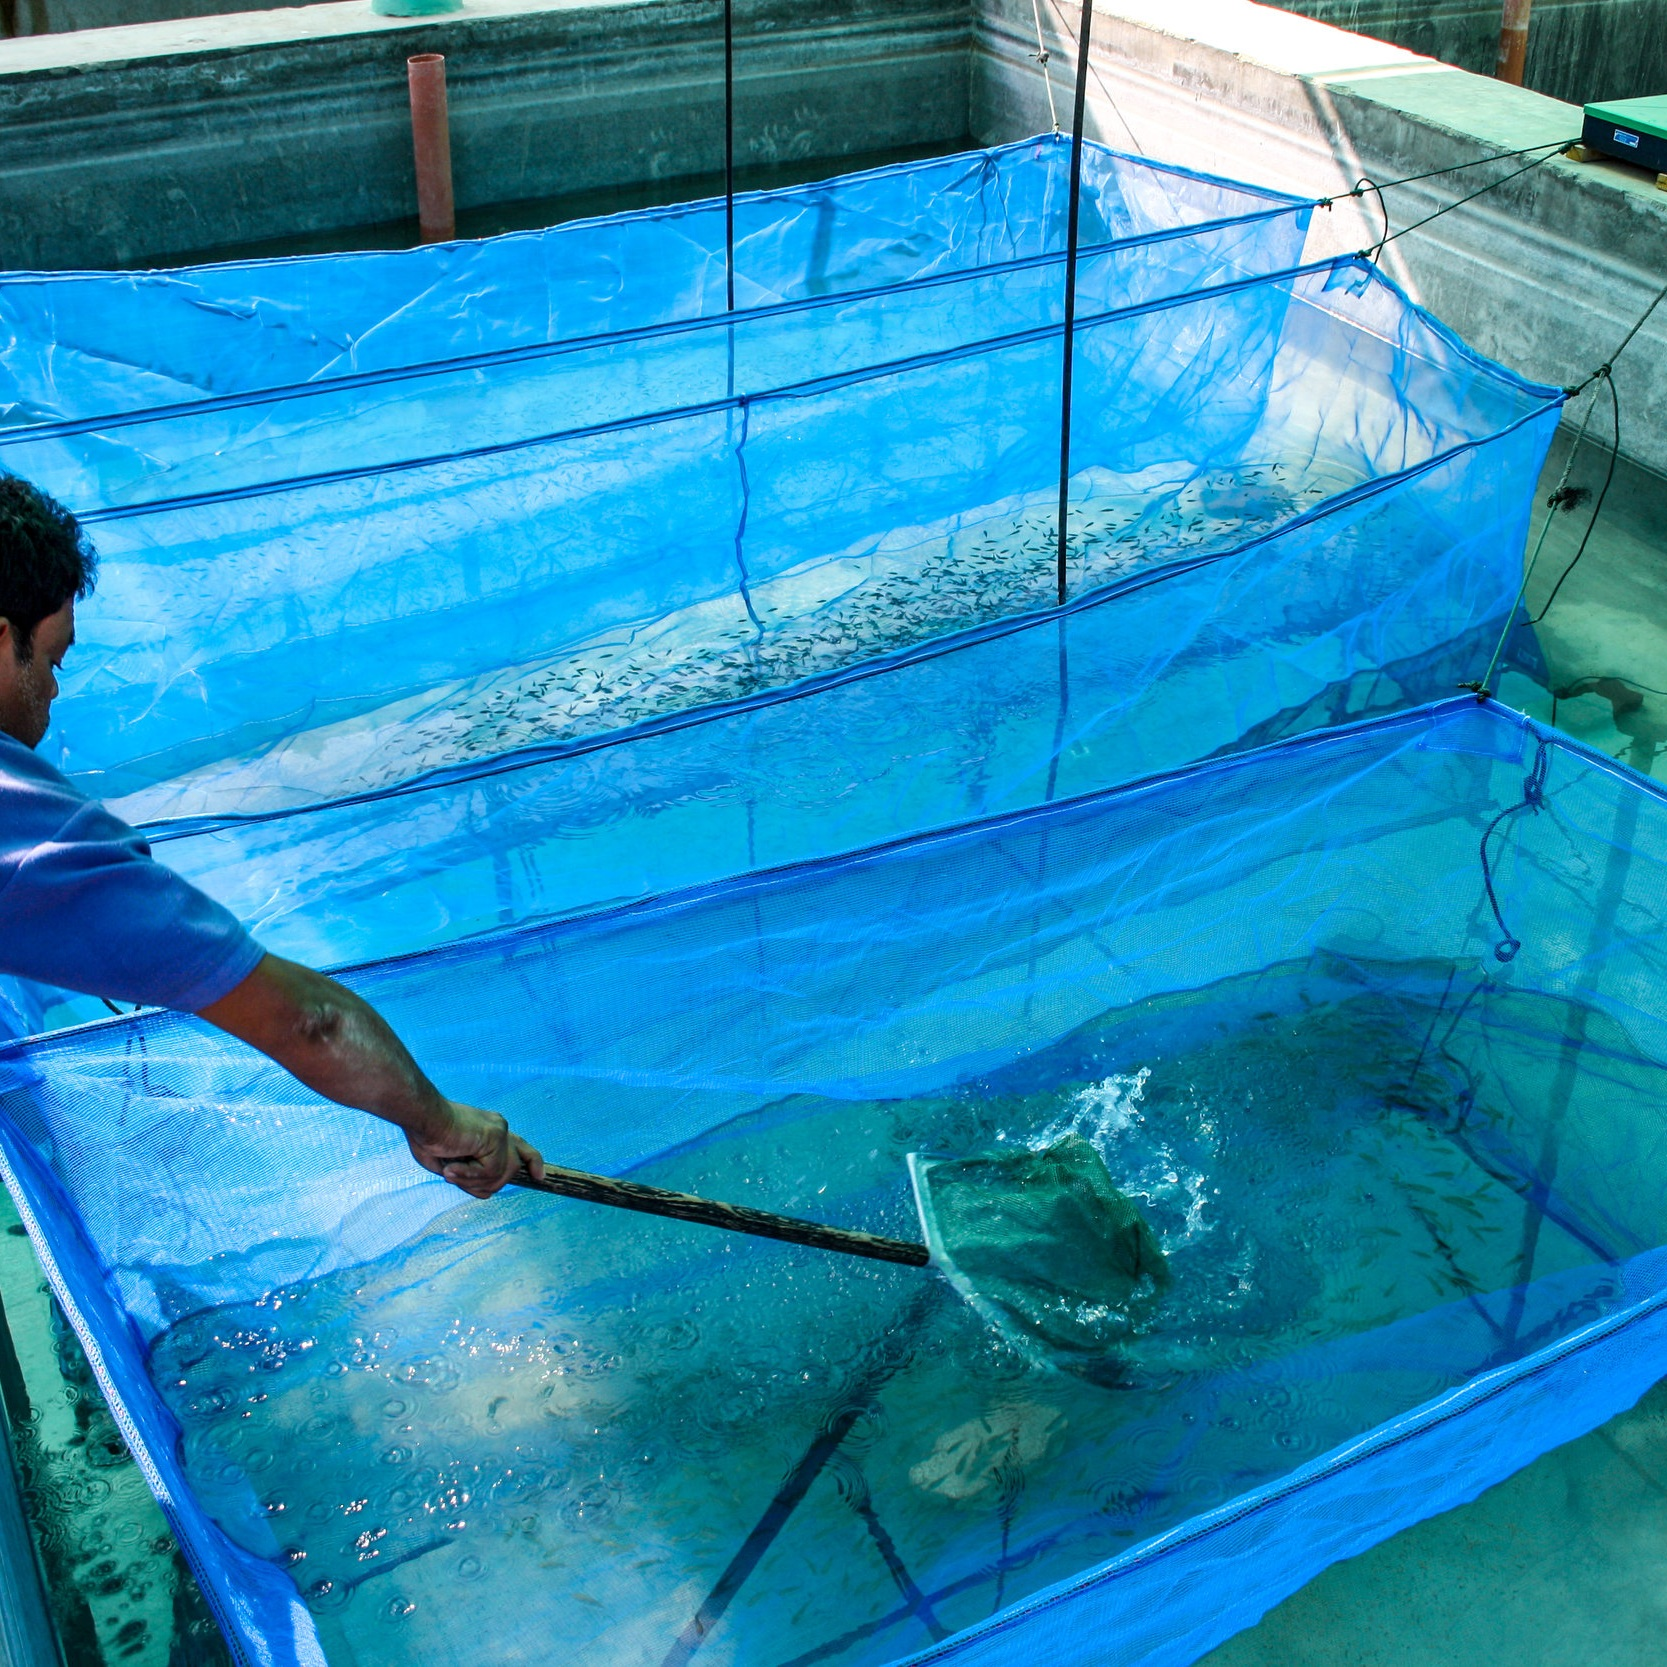 Small fish are strained out of blue water tanks using a hand held net.